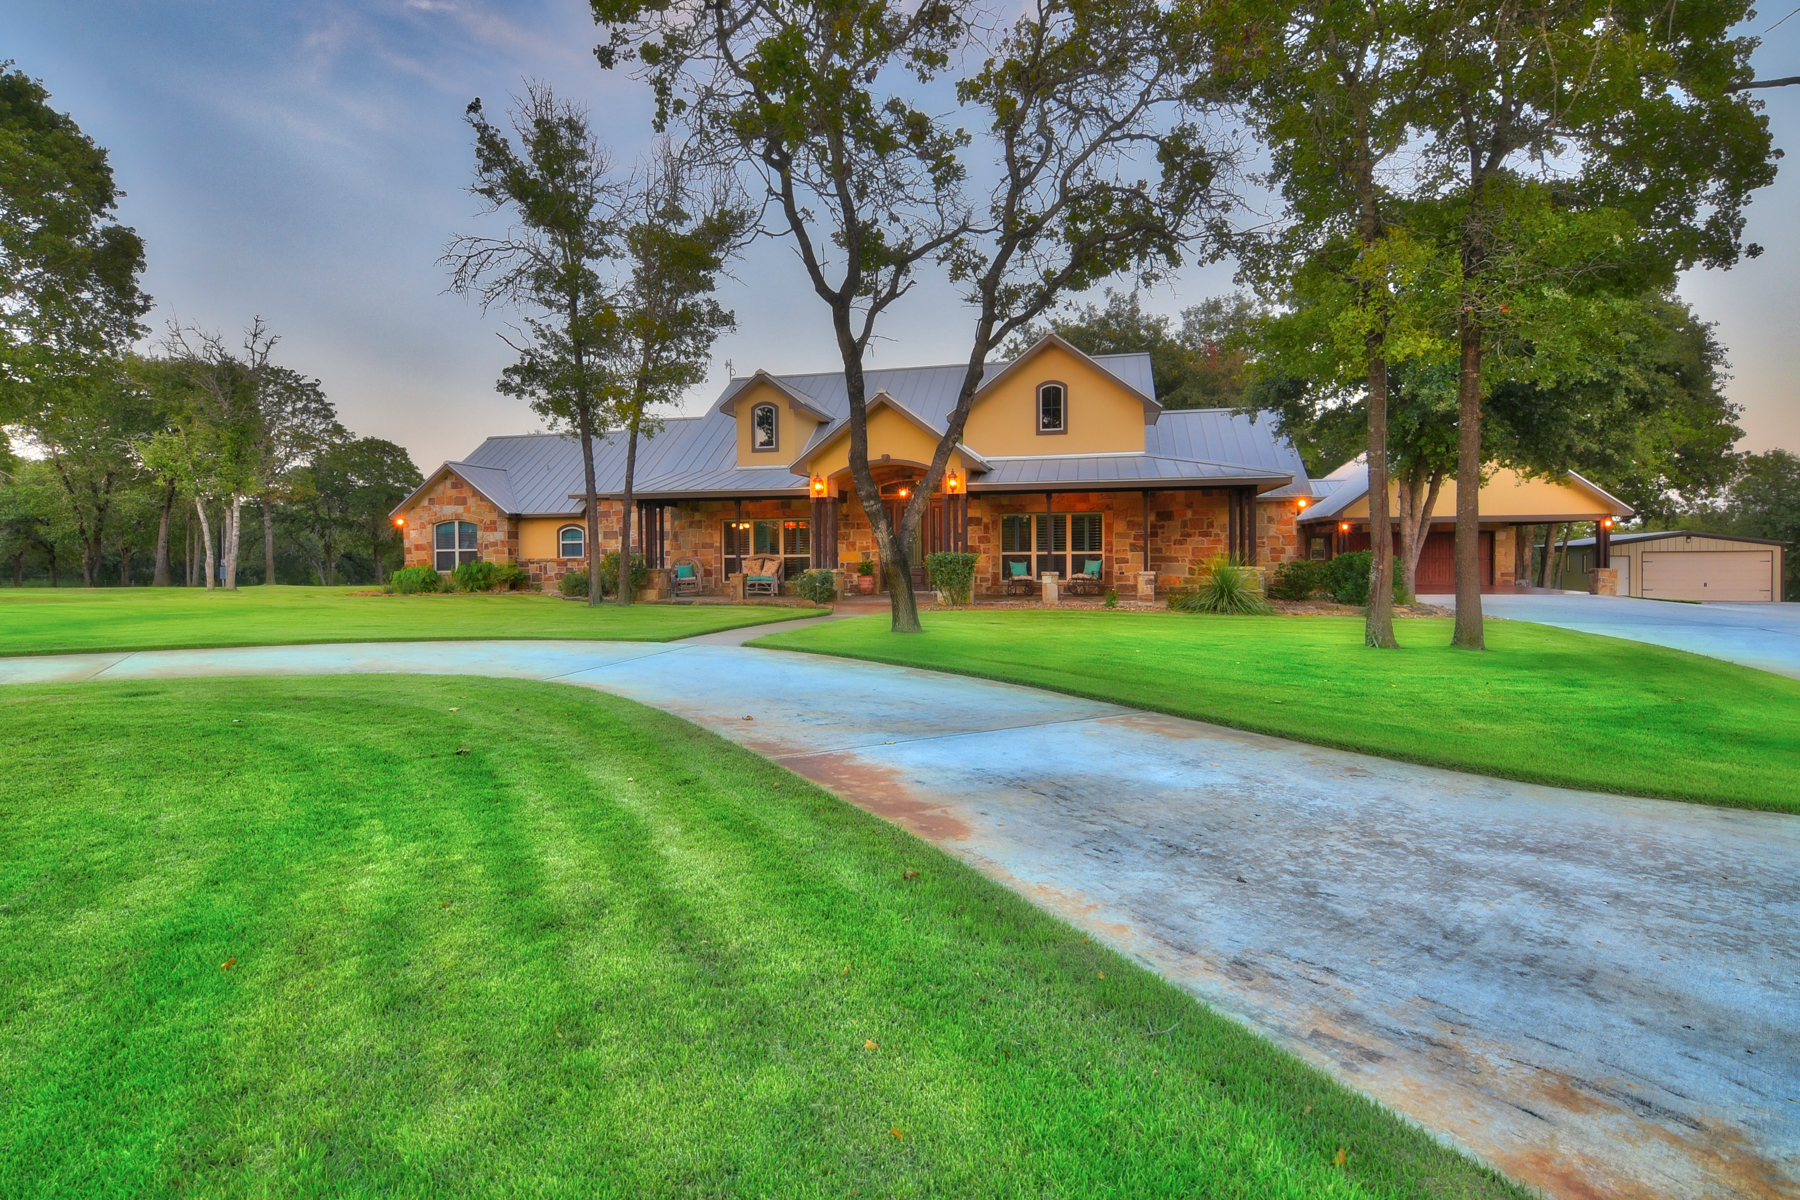 Additional photo for property listing at Breathtaking La Vernia Gem 7489 FM 775 La Vernia, Texas 78121 United States